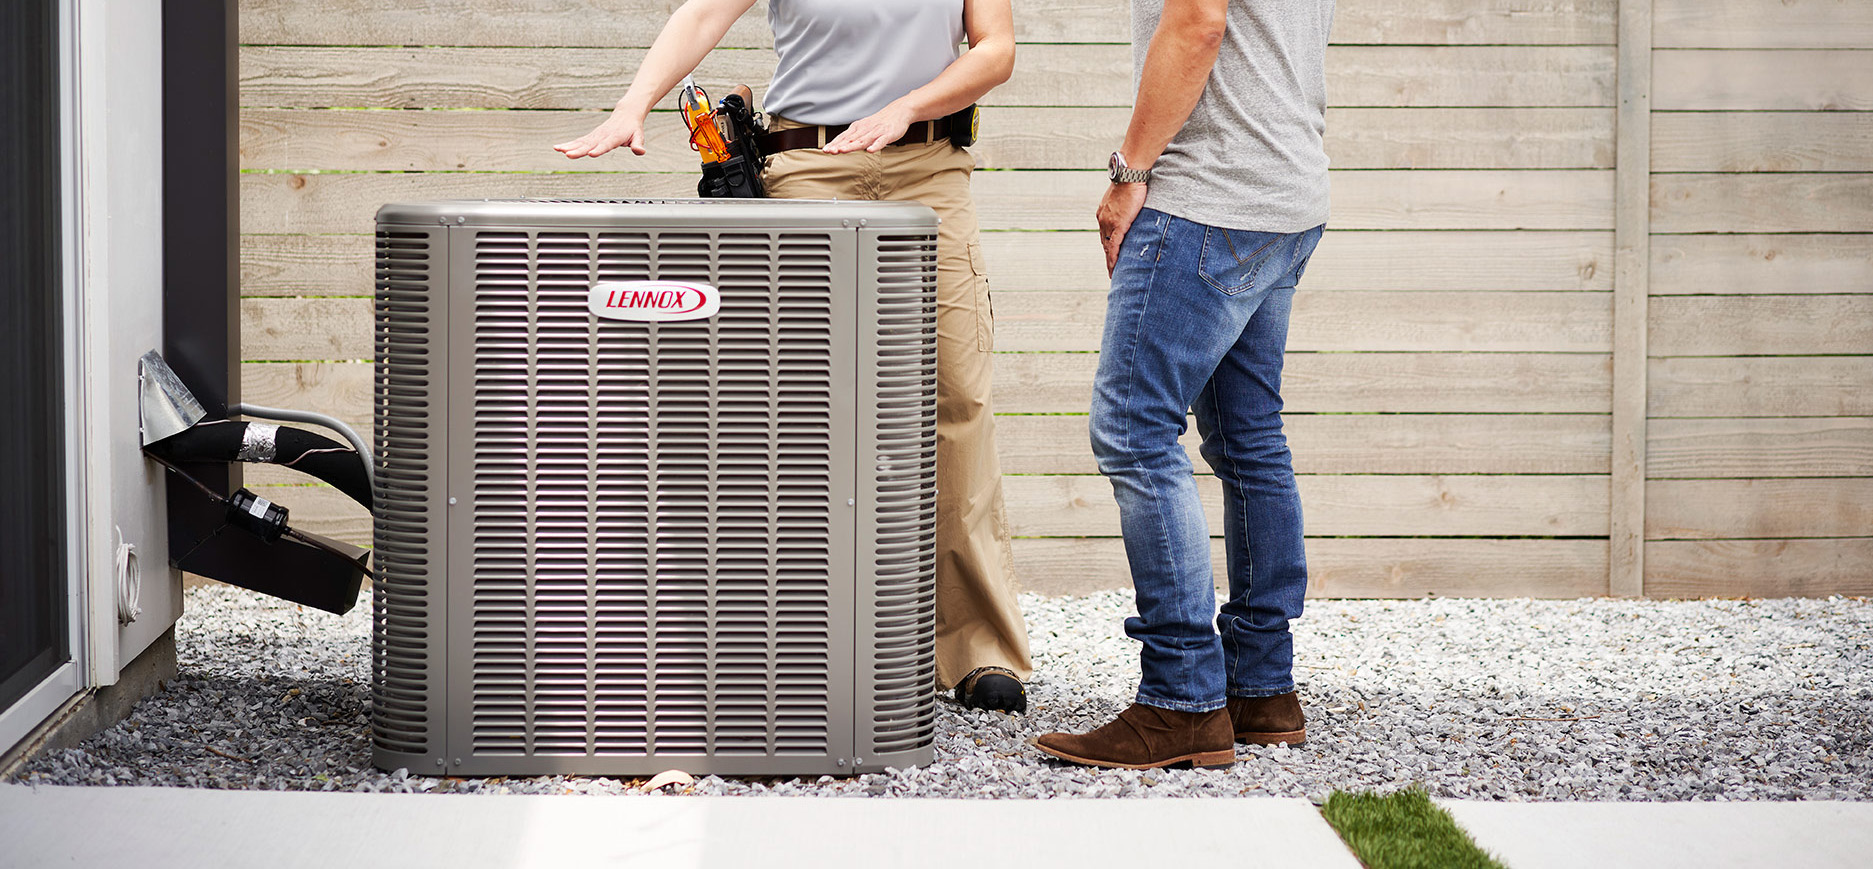 HVAC Technician and Owner next to Lennox HVAC system